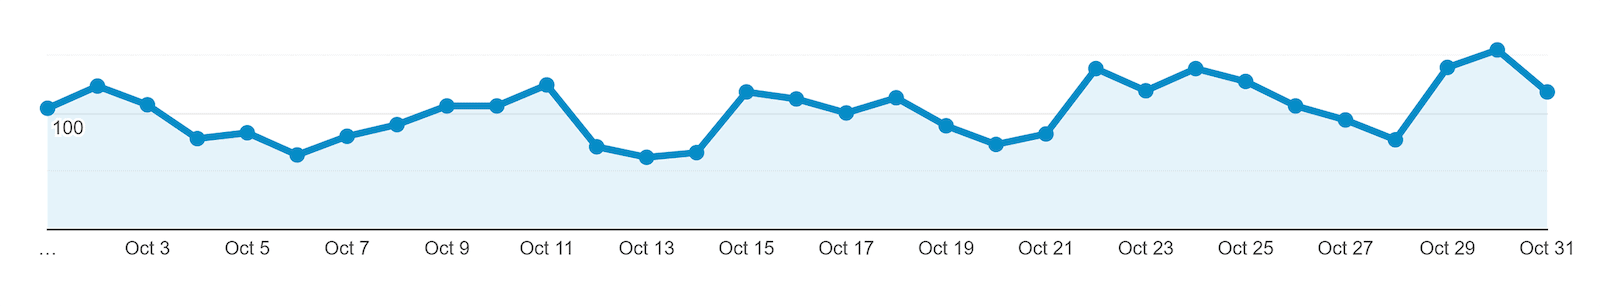 Google Analytics 30-day traffic for one post